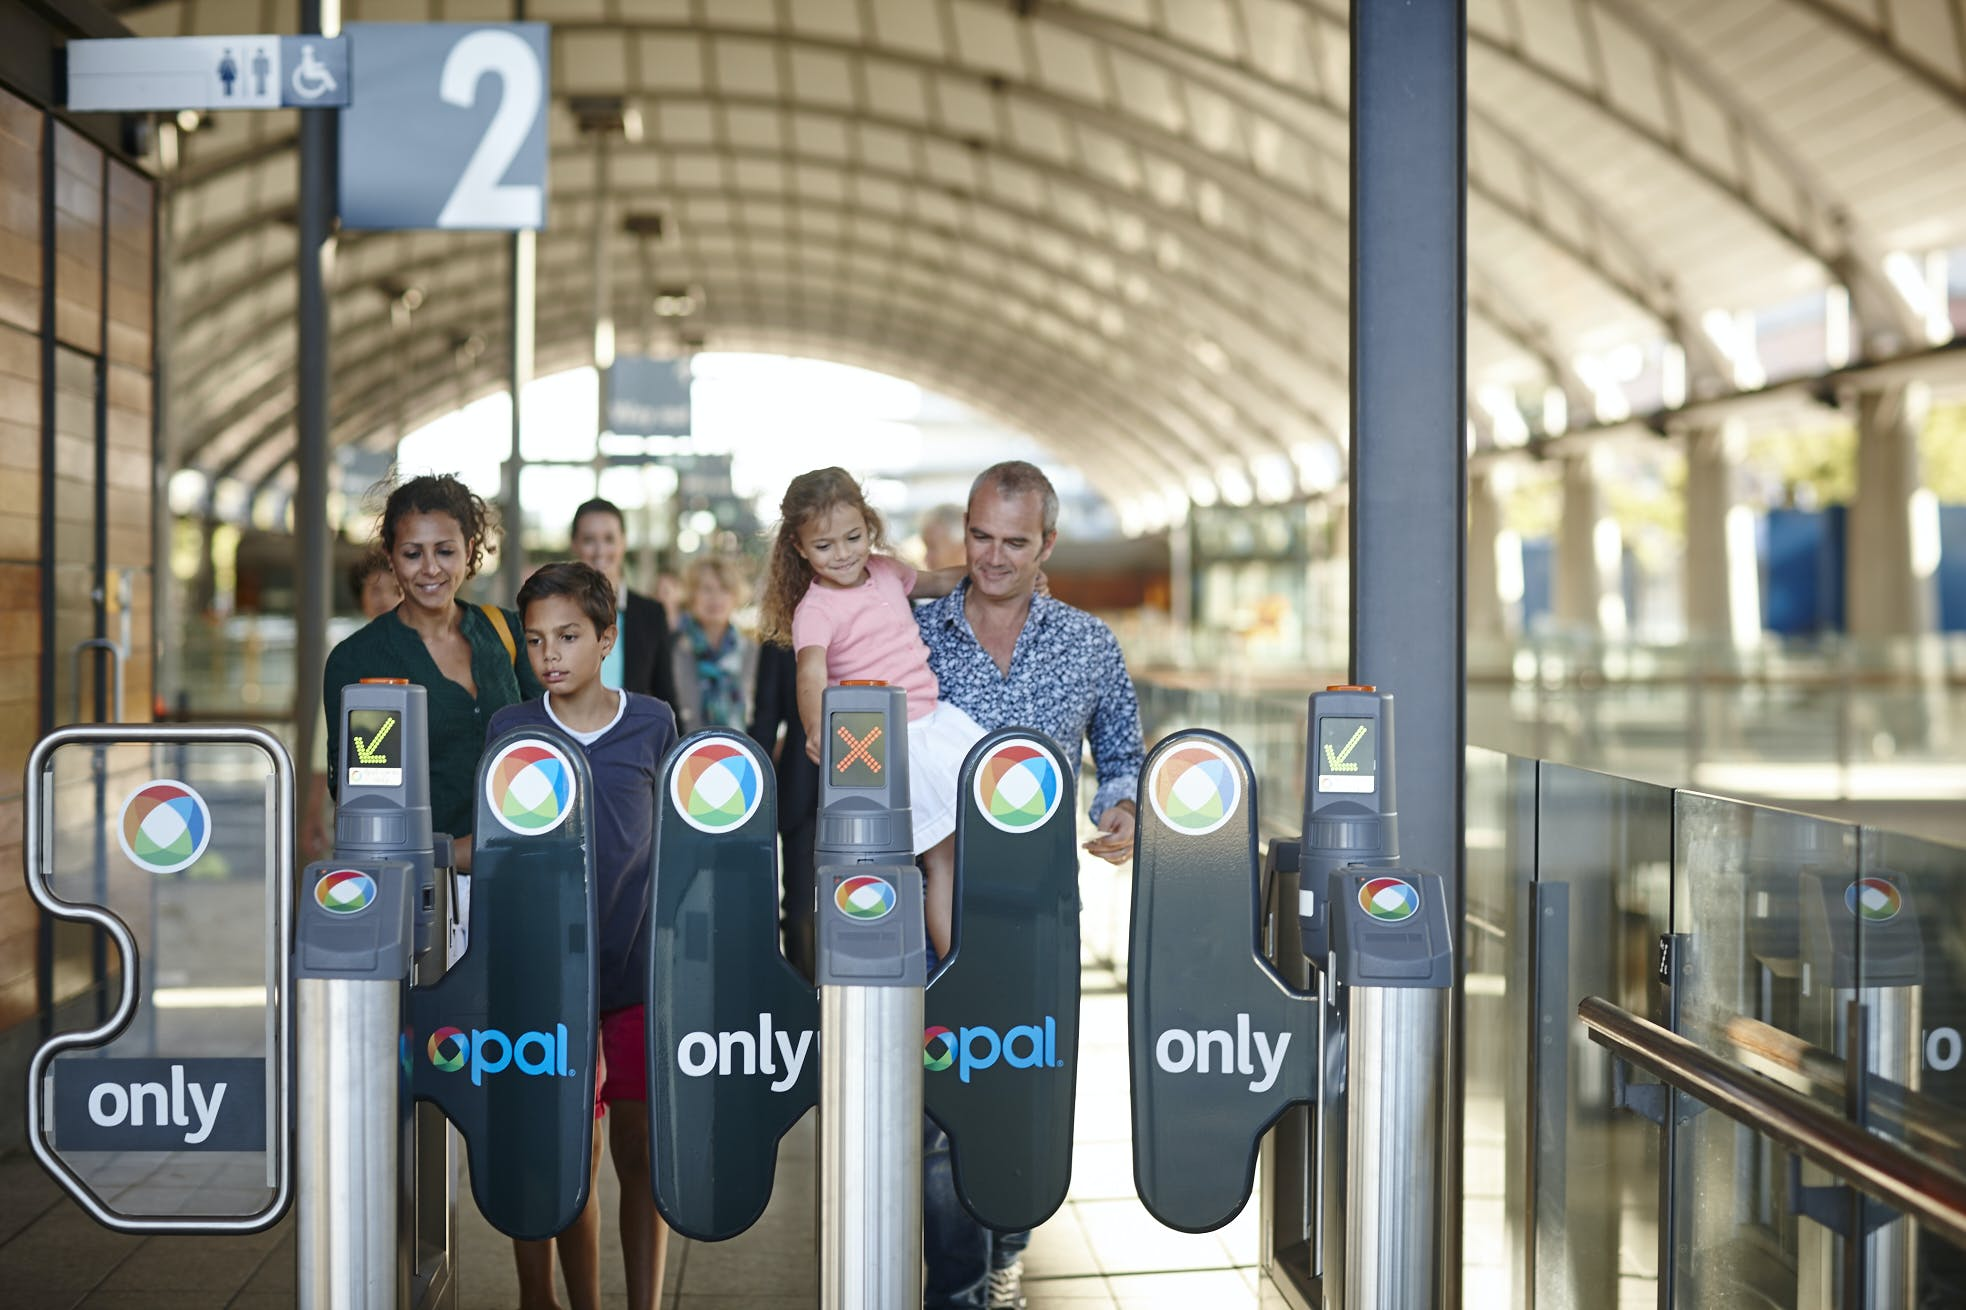 Opal only gates